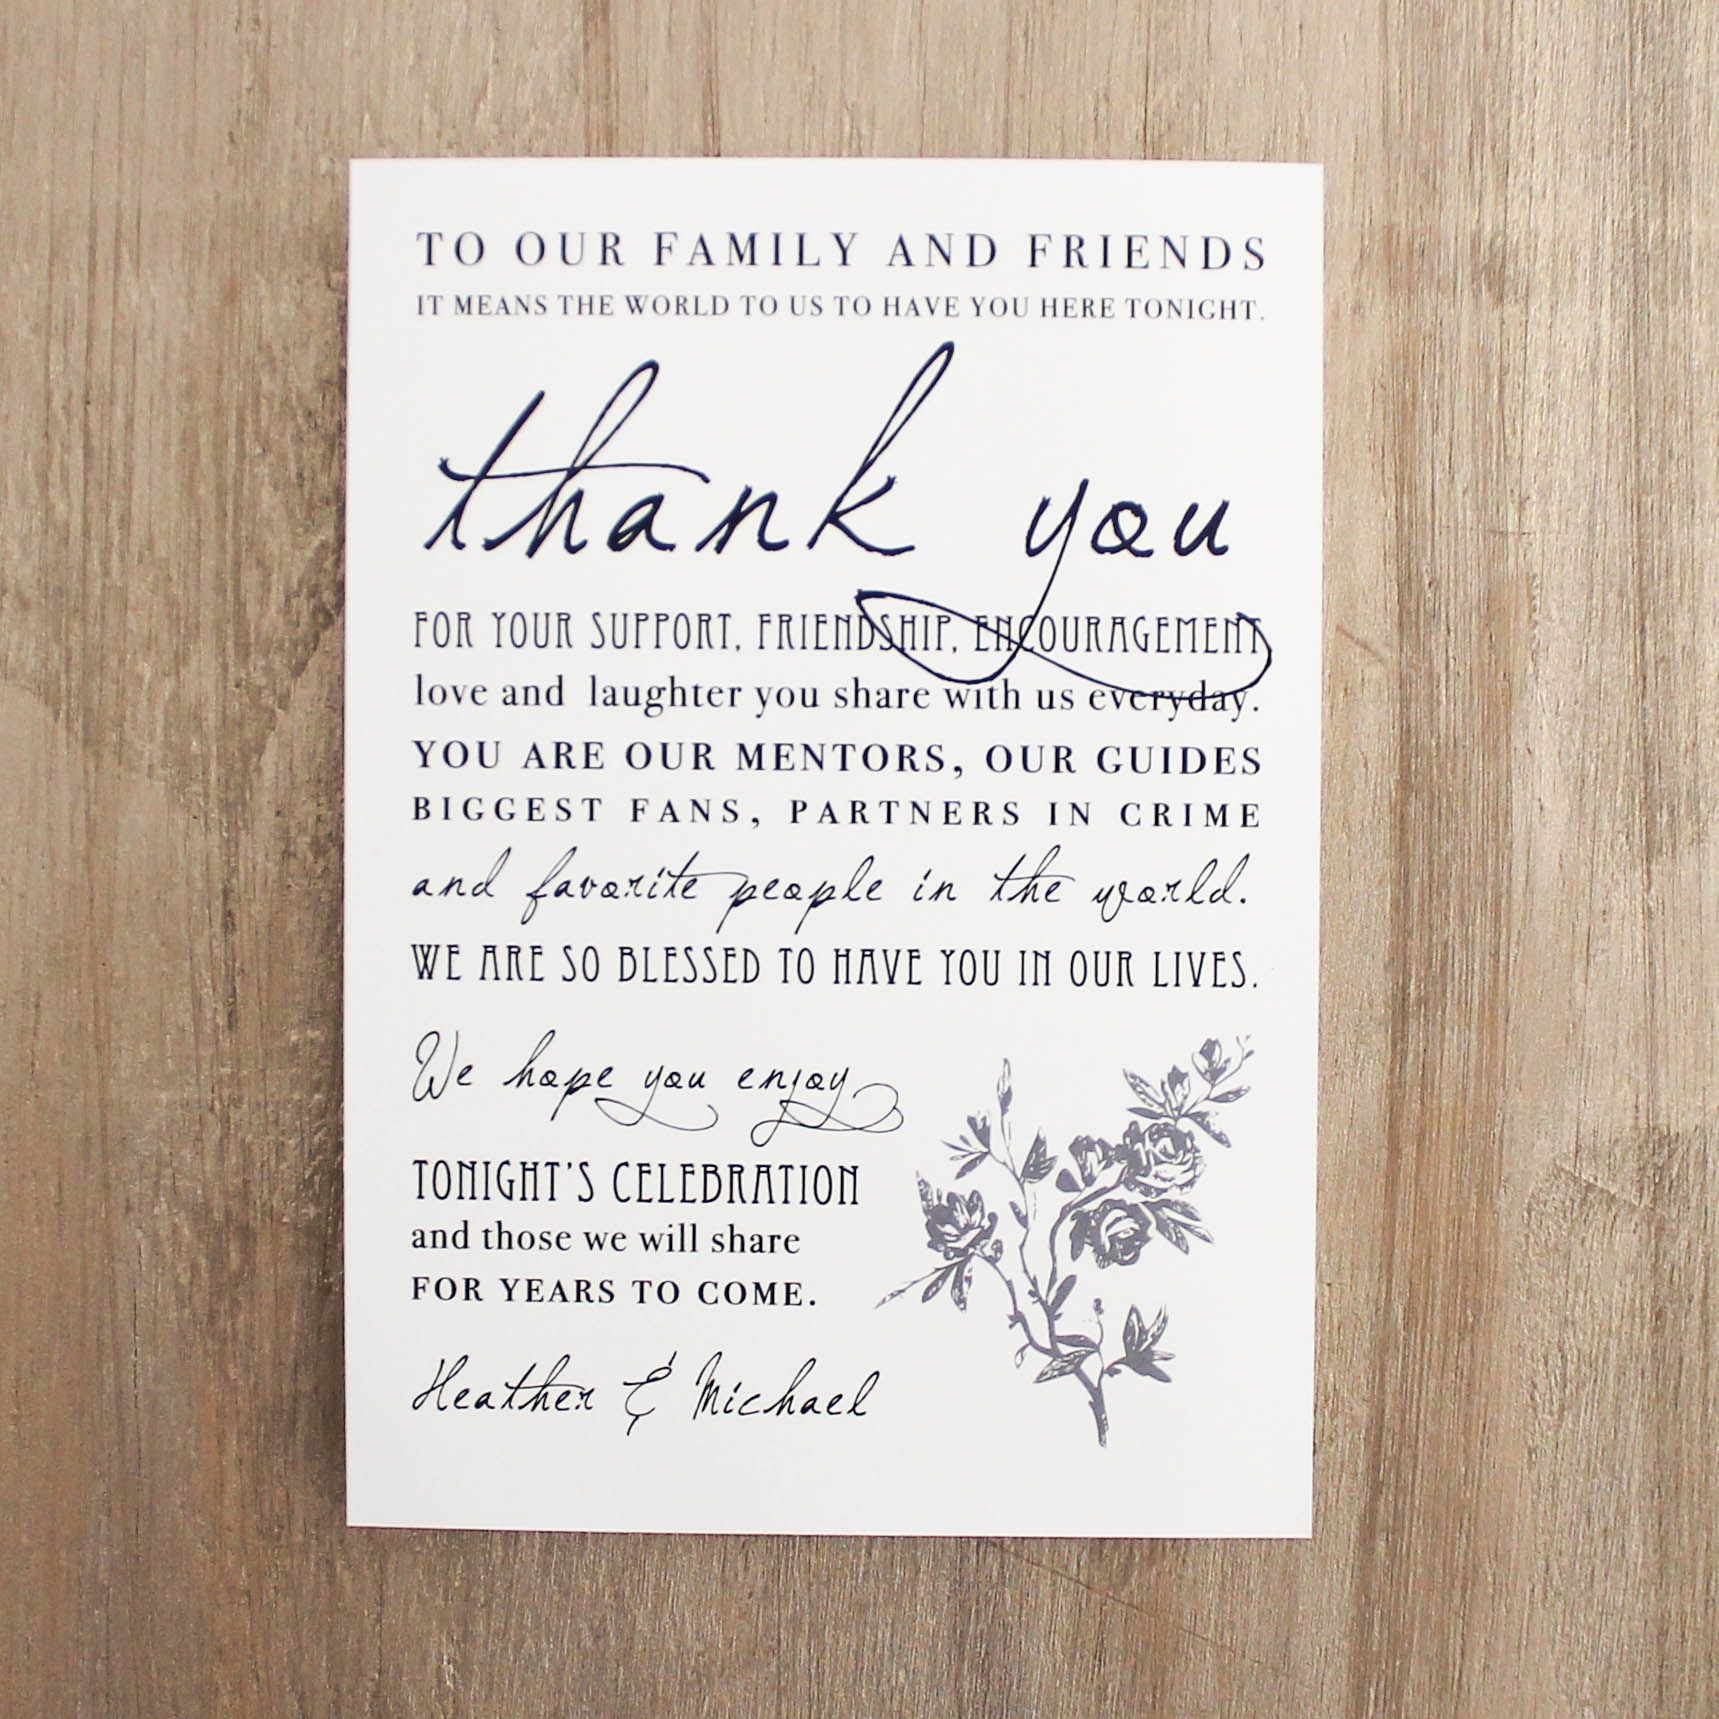 Having a traditional themed wedding? With All White, Beacon Lane offers a gray & ivory reception thank you style that is customizable to fit your wedding.